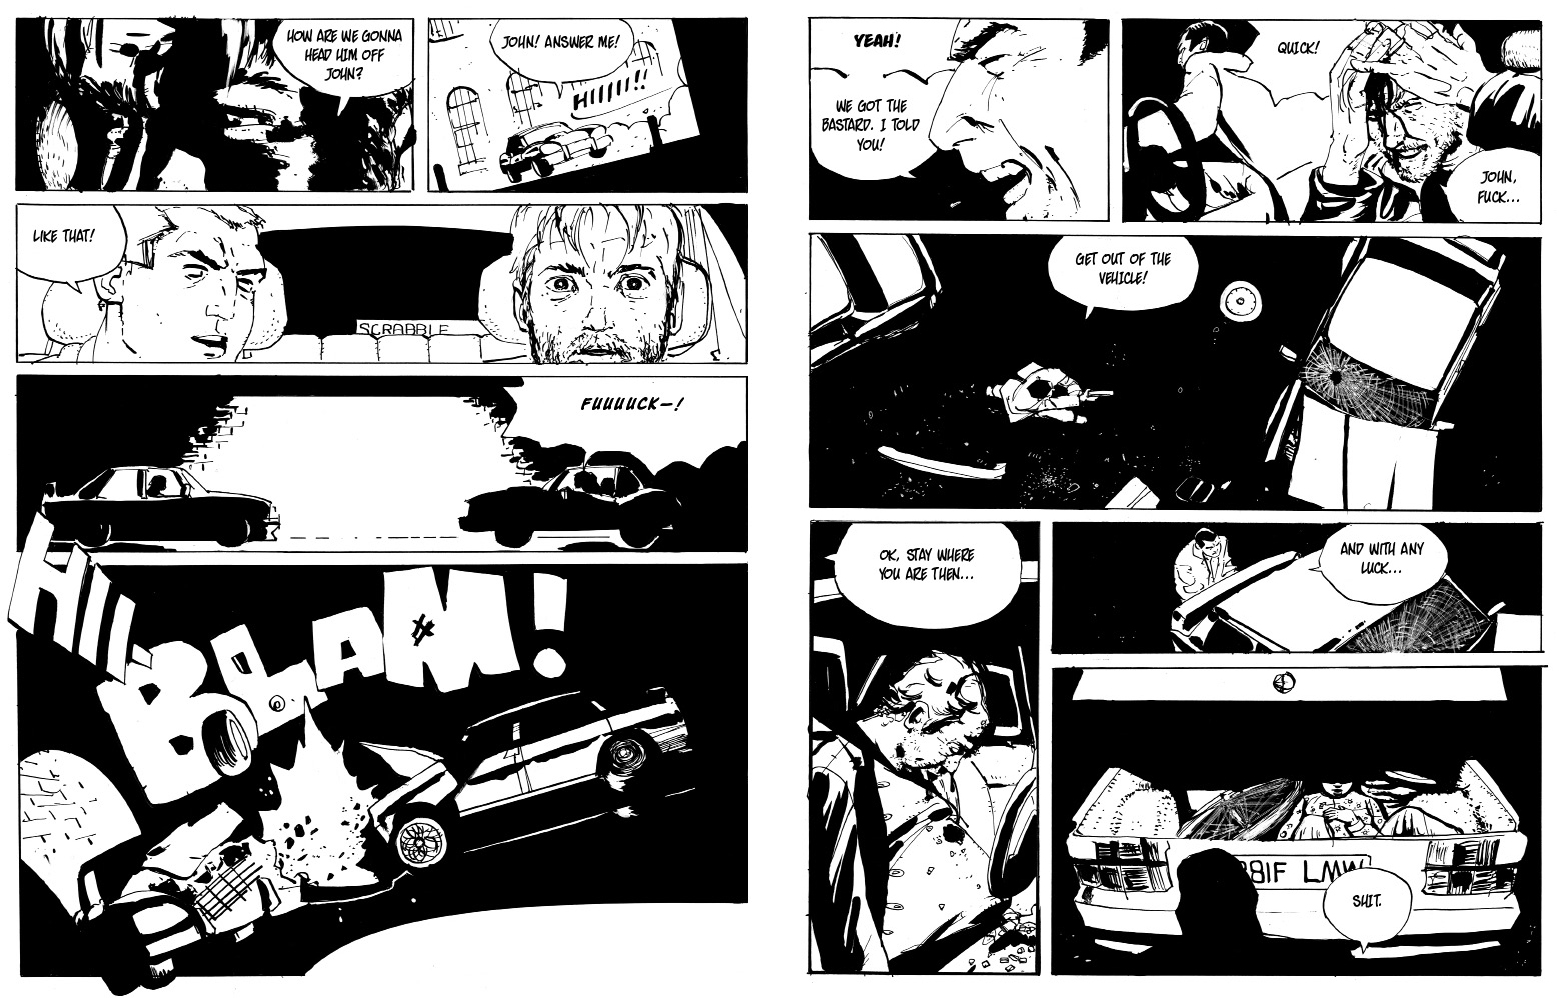 London Inferno (Final)_ENGLISH_roger mason_pages 12 - 13_noir comics_police comics_crime_frank miller